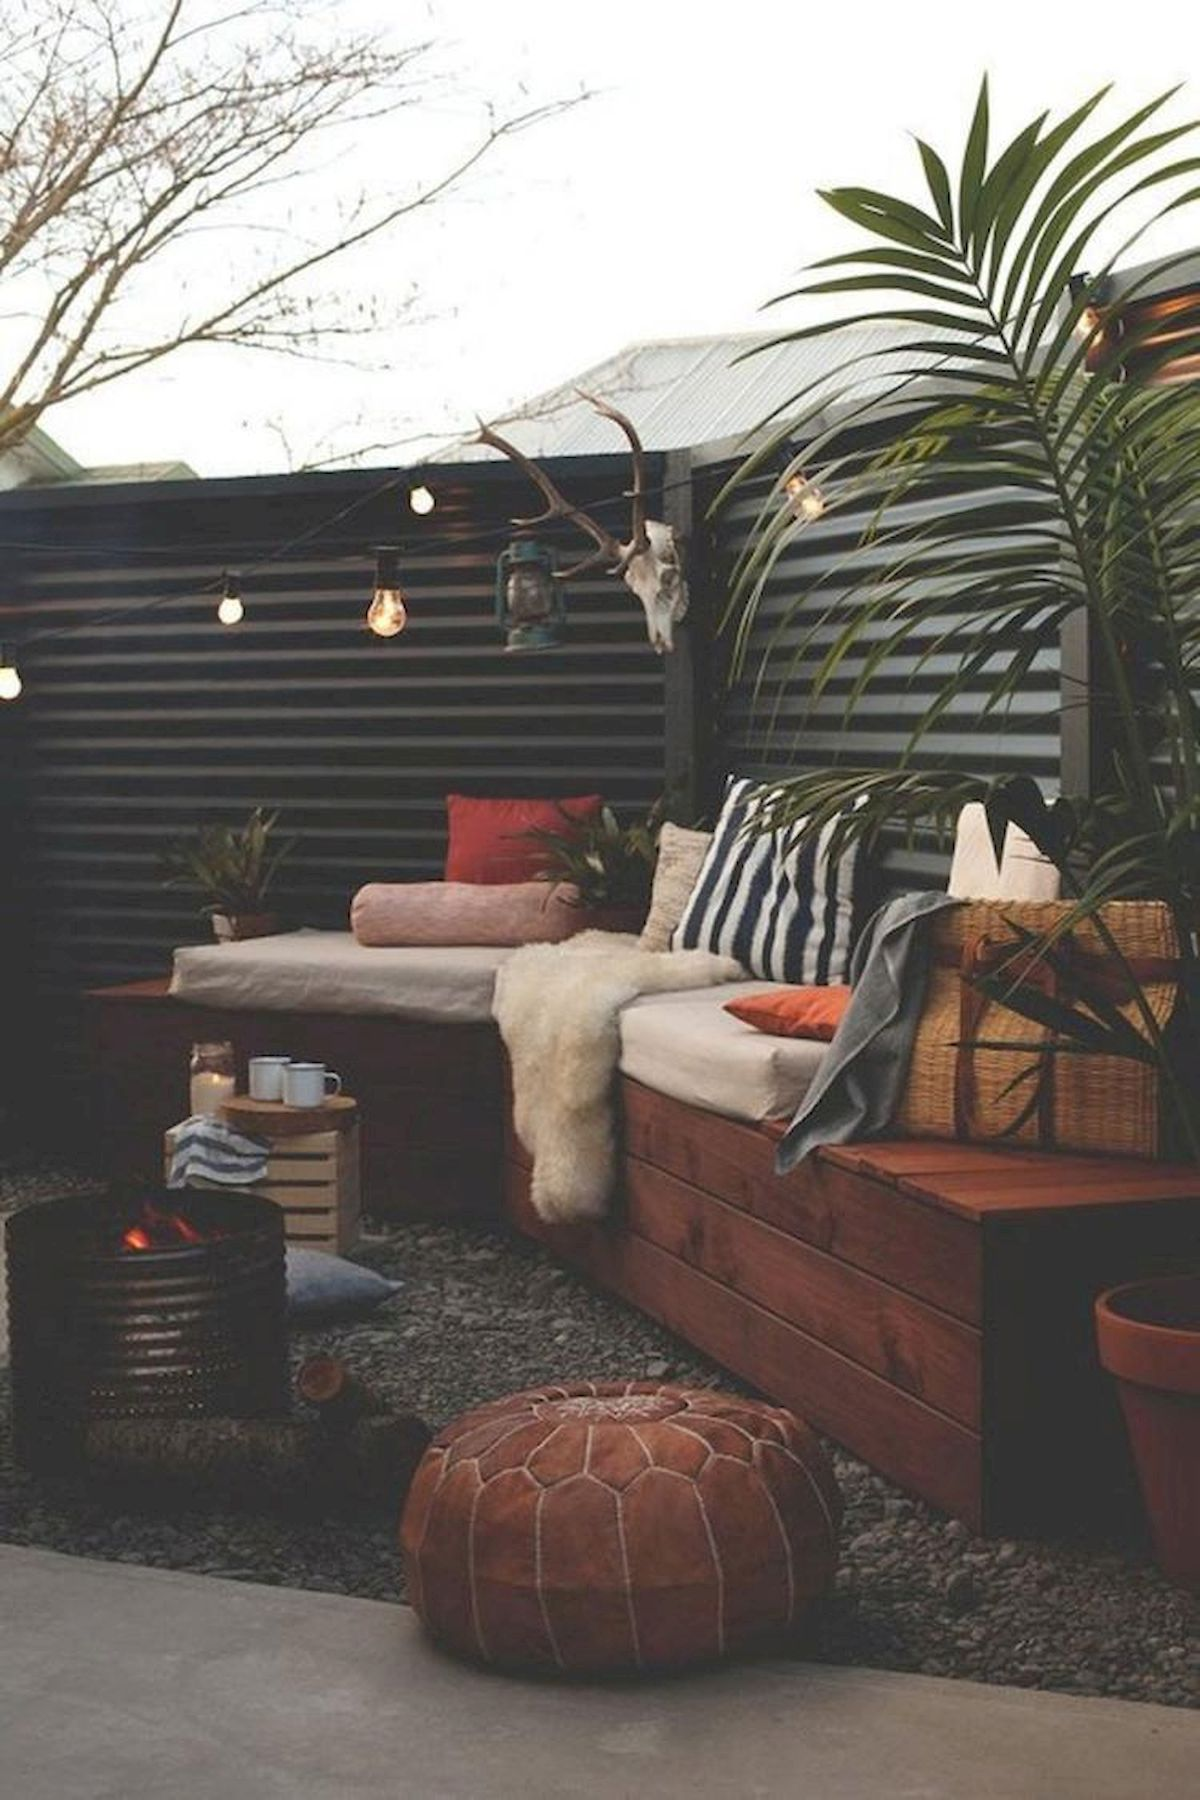 60 Awesome Backyard Privacy Design and Decor Ideas (15)